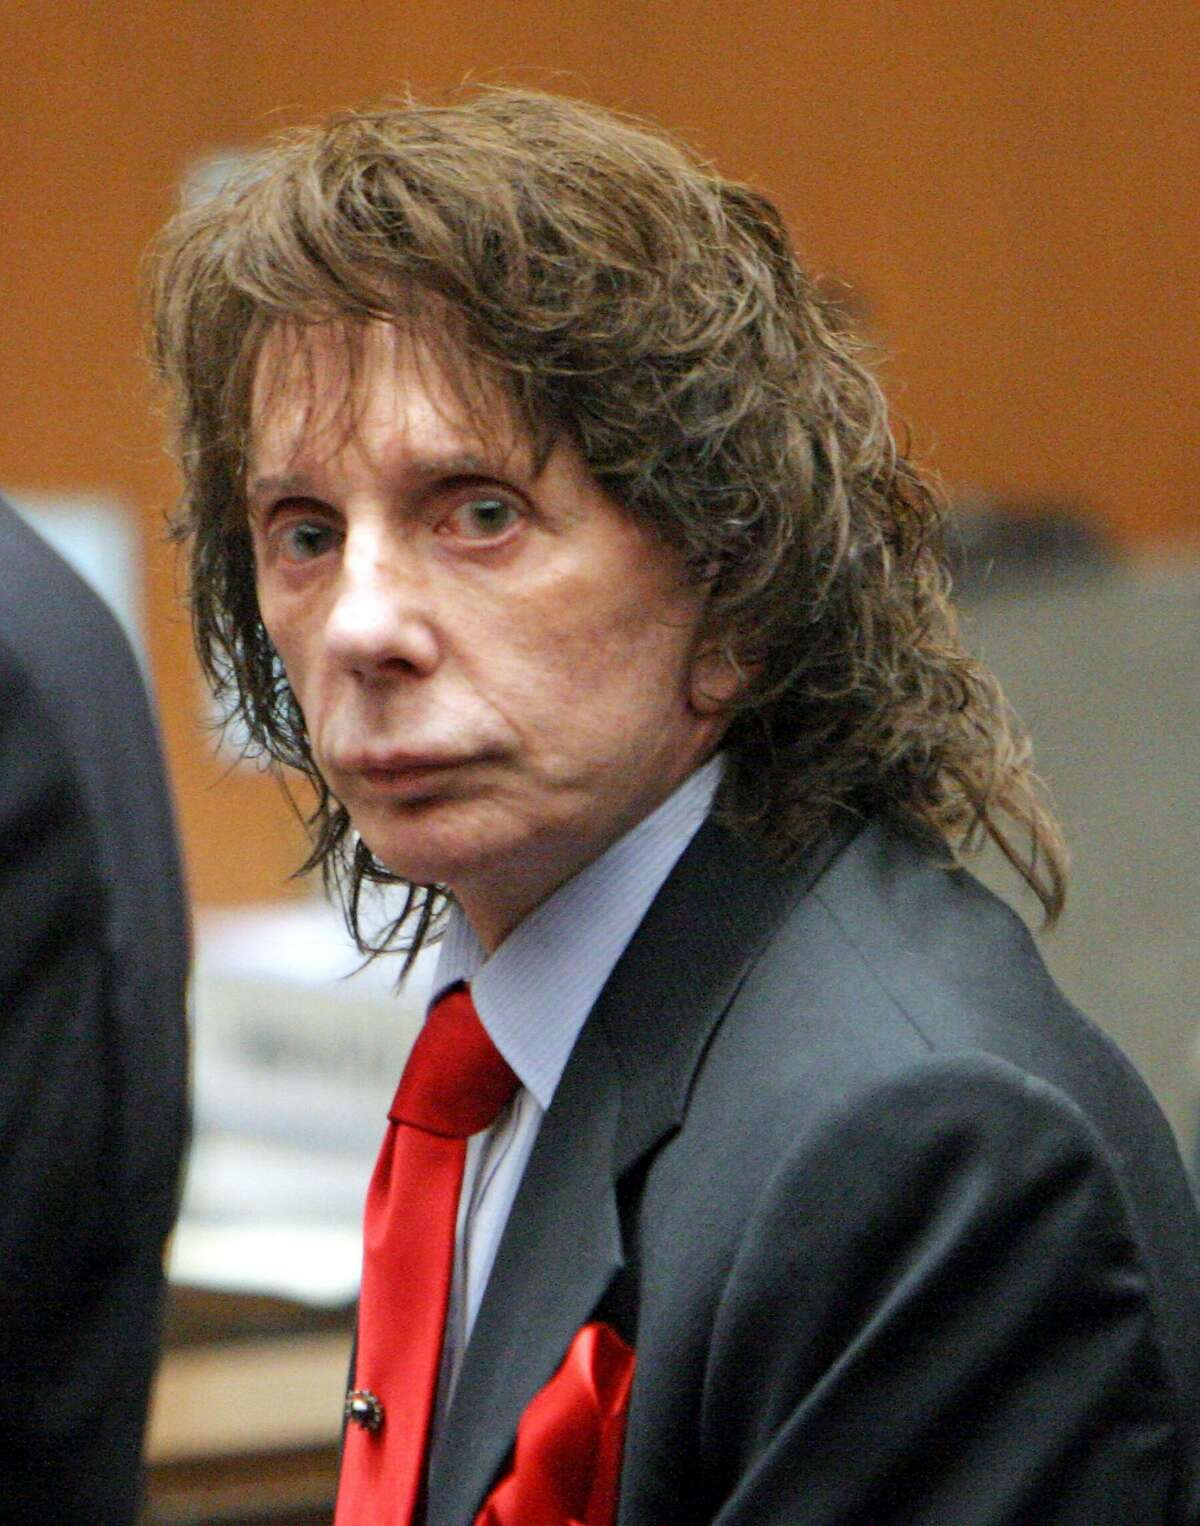 Since 2009, Phil Spector had been serving a prison sentence for the murder of Lana Clarkson, a nightclub hostess he took home after a night of drinking in 2003.Credit...Pool Photo Al Seib/Getty Images